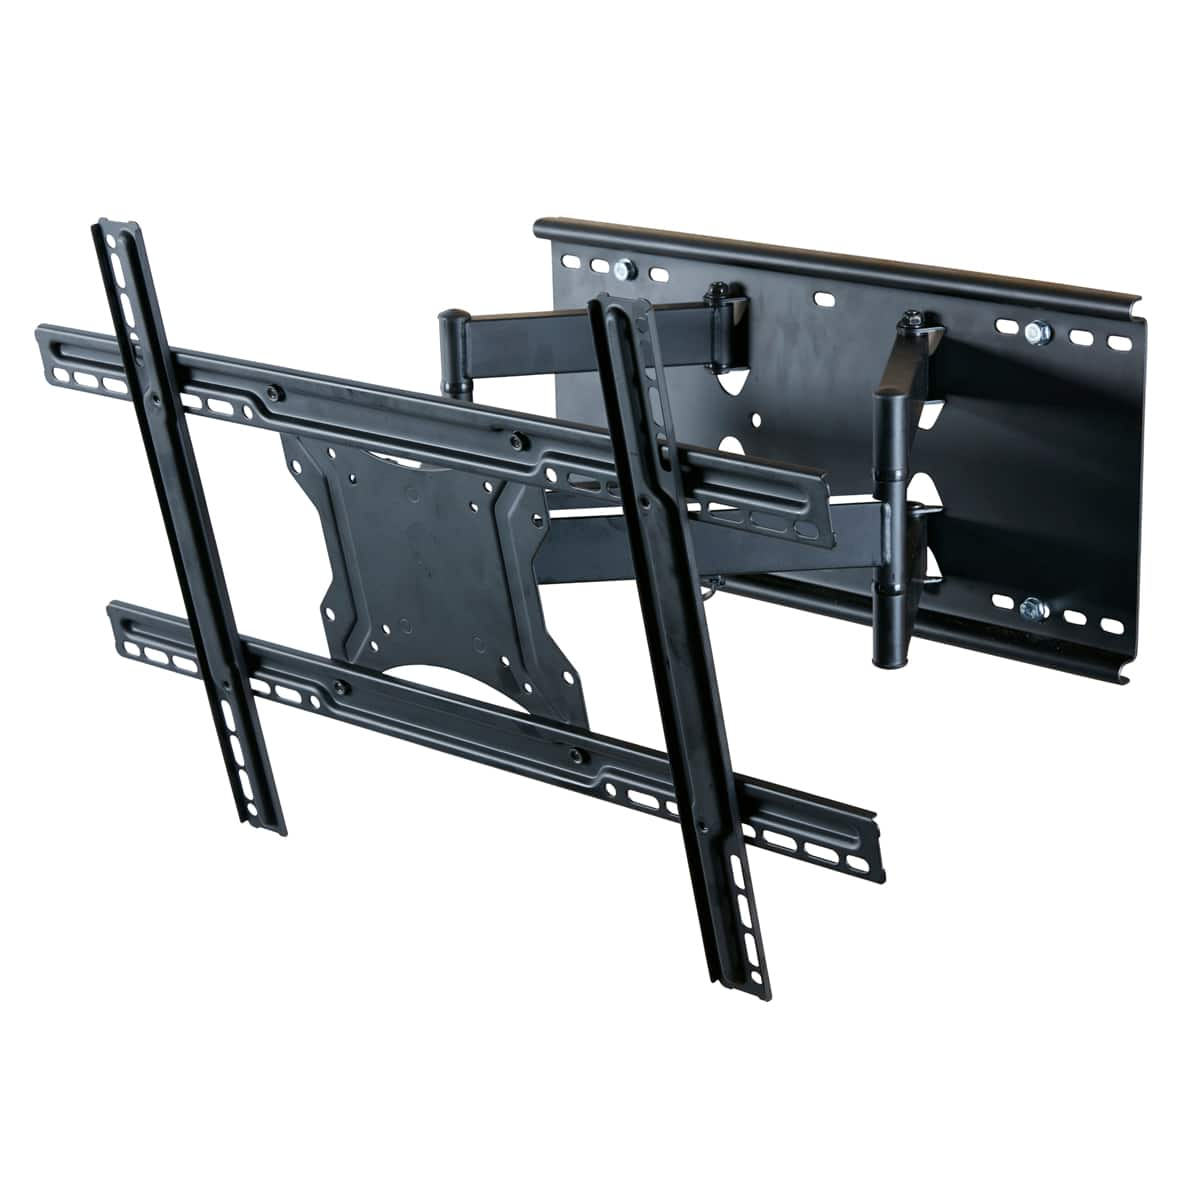 "37"" to 80"" Full-Motion TV Wall Mount $39.99"